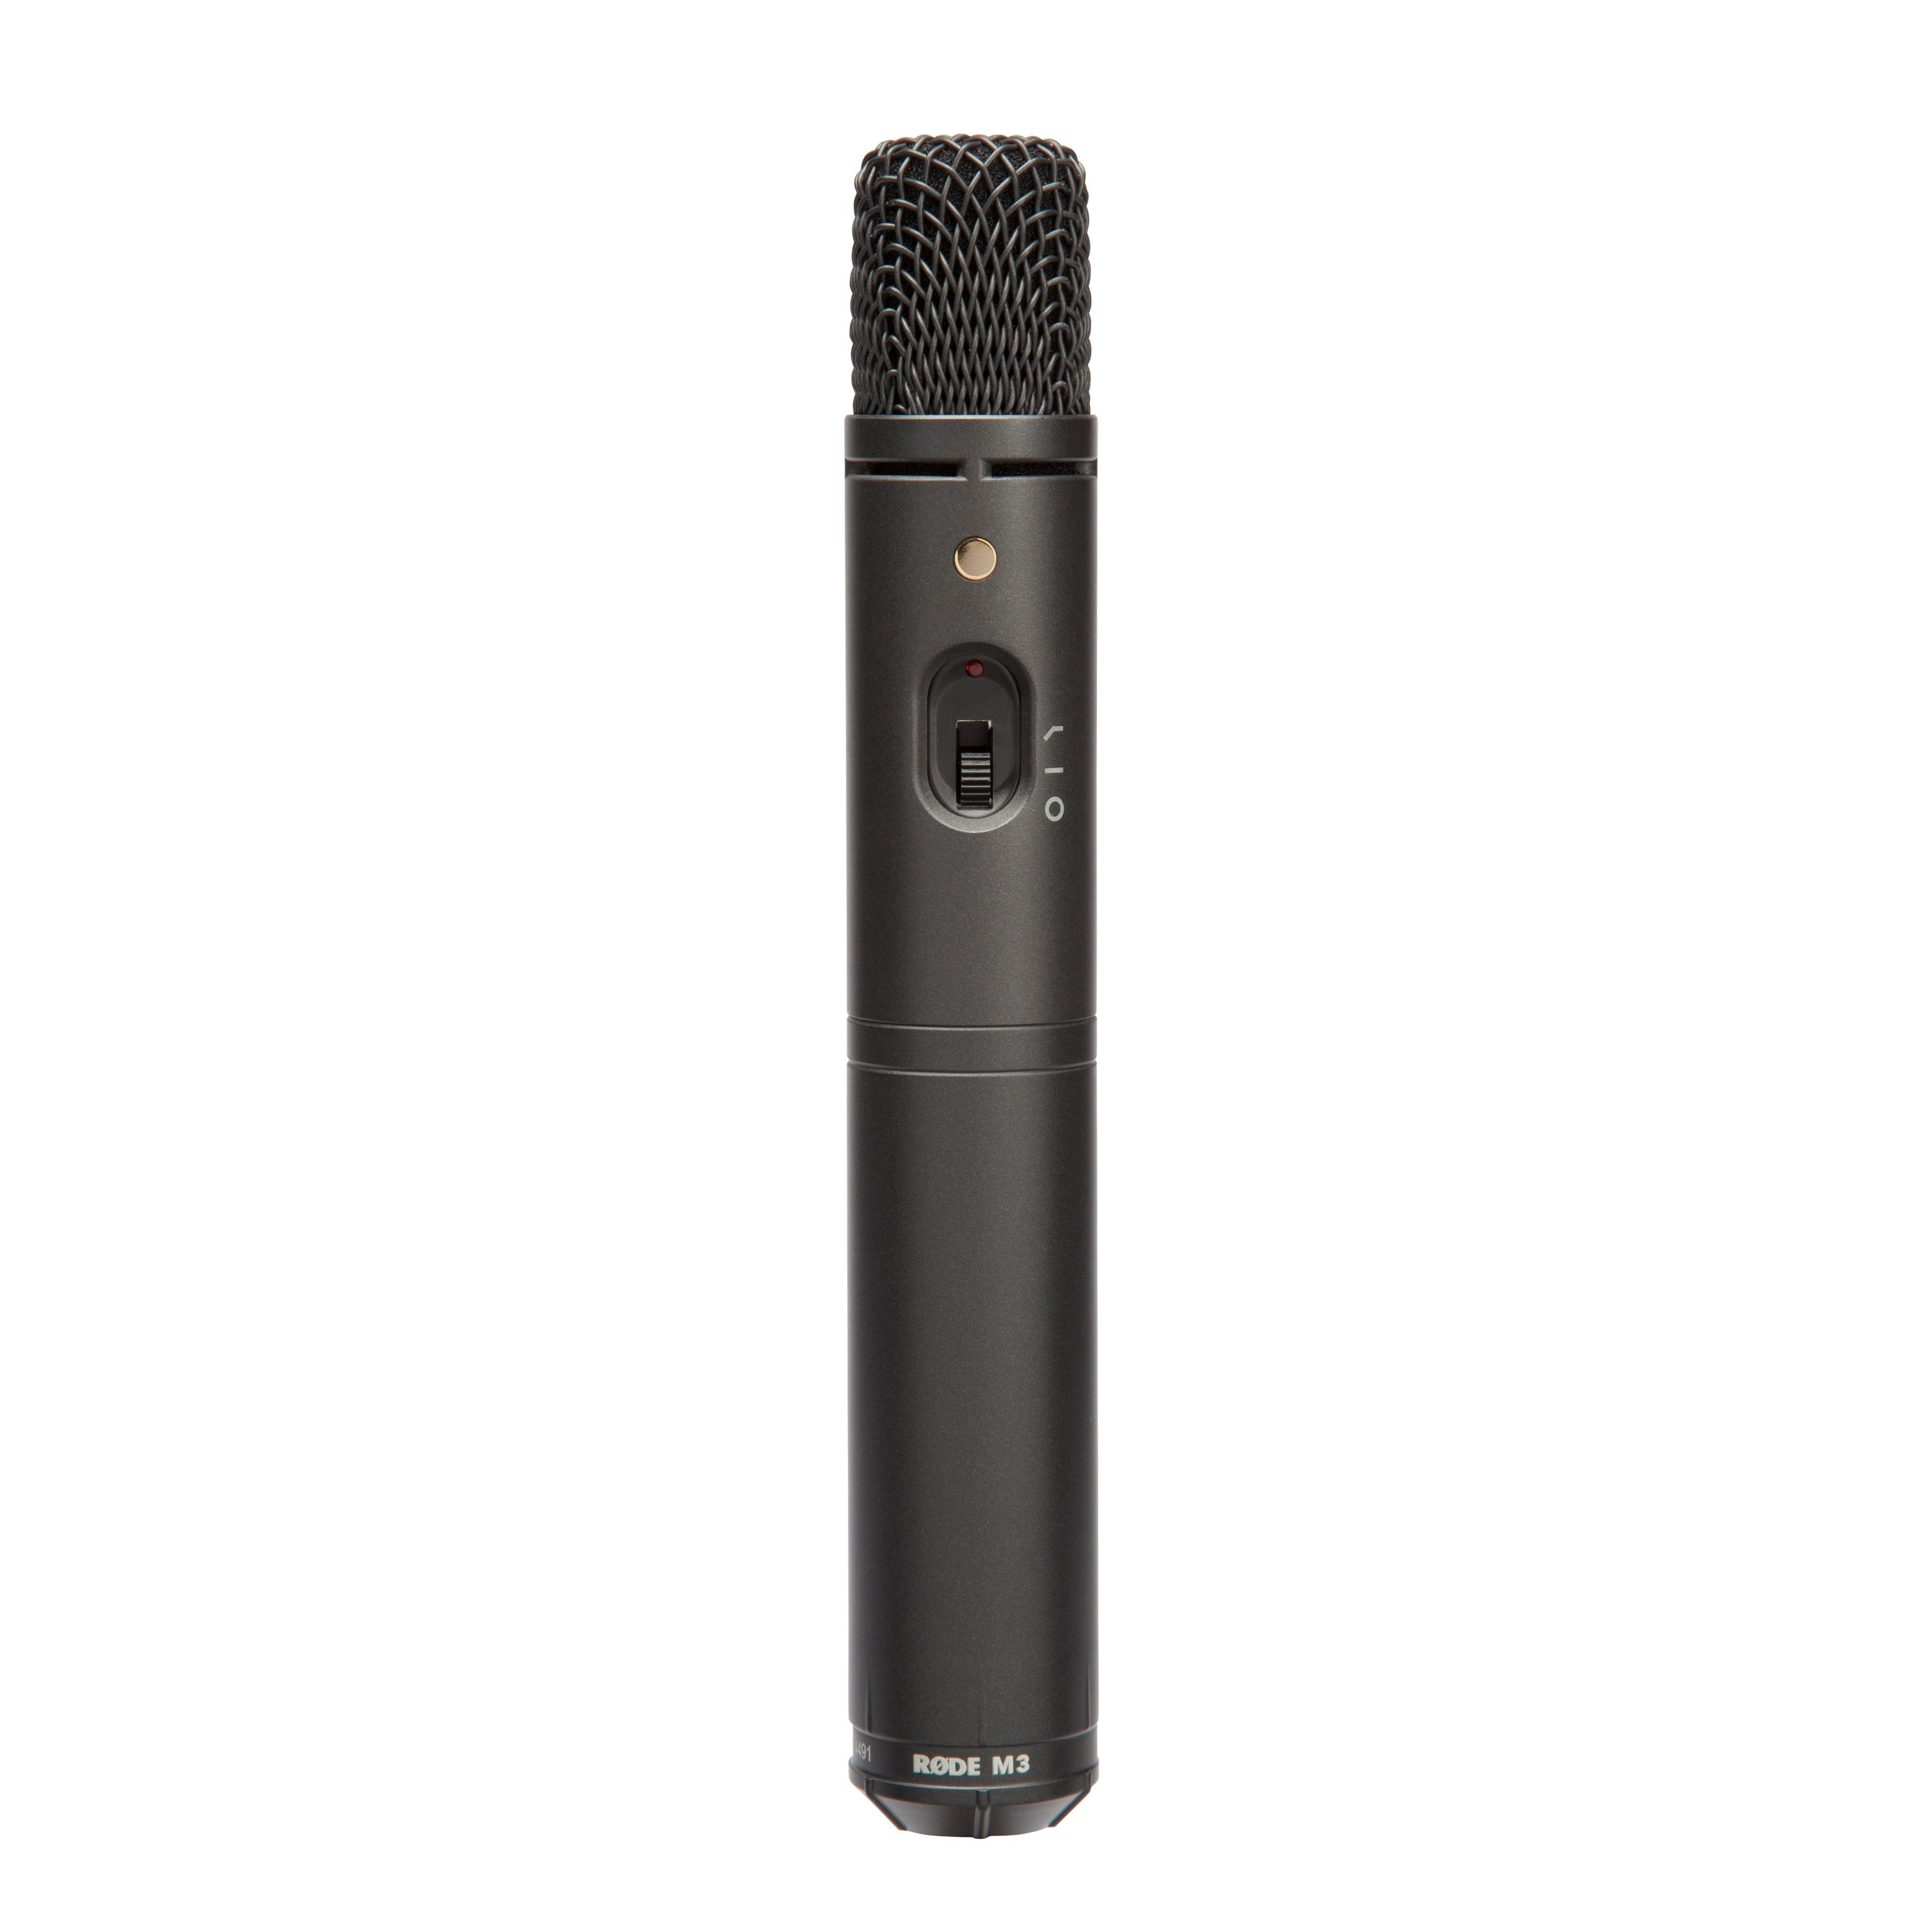 amazon com rode m3 instrument condenser microphone musical view larger